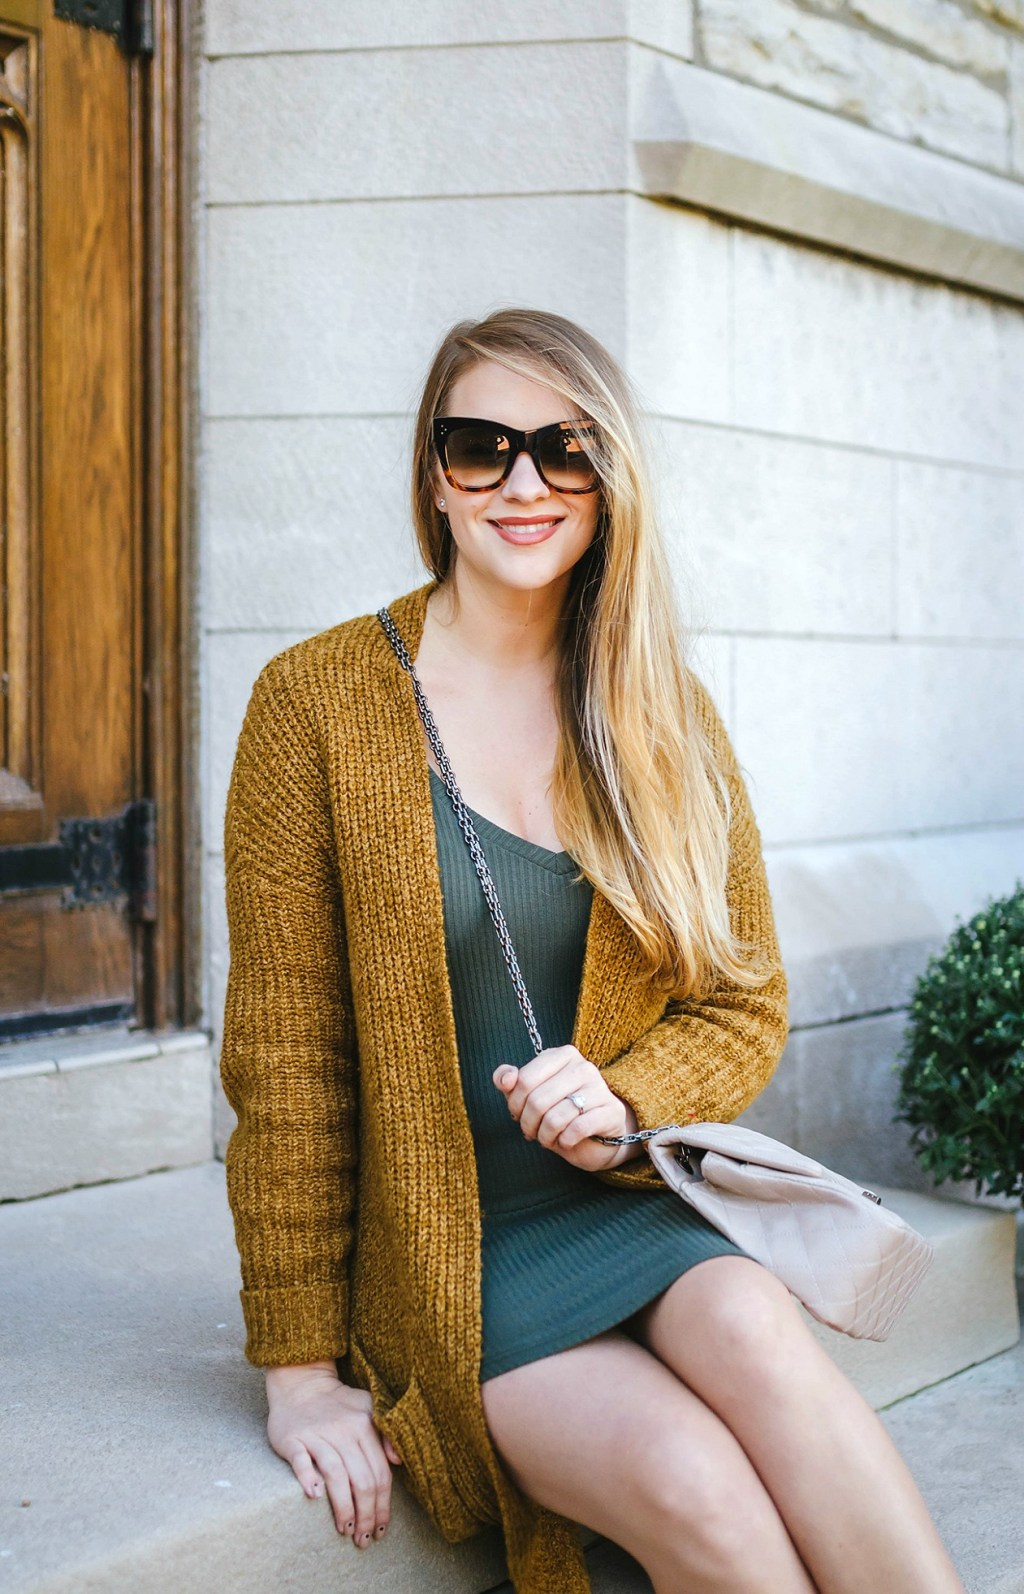 maternity-style-fall-style-outfit-canadian-bloggger-lifestyle-fashion-sweater-dress-booties-rose-city-style-guide-copy